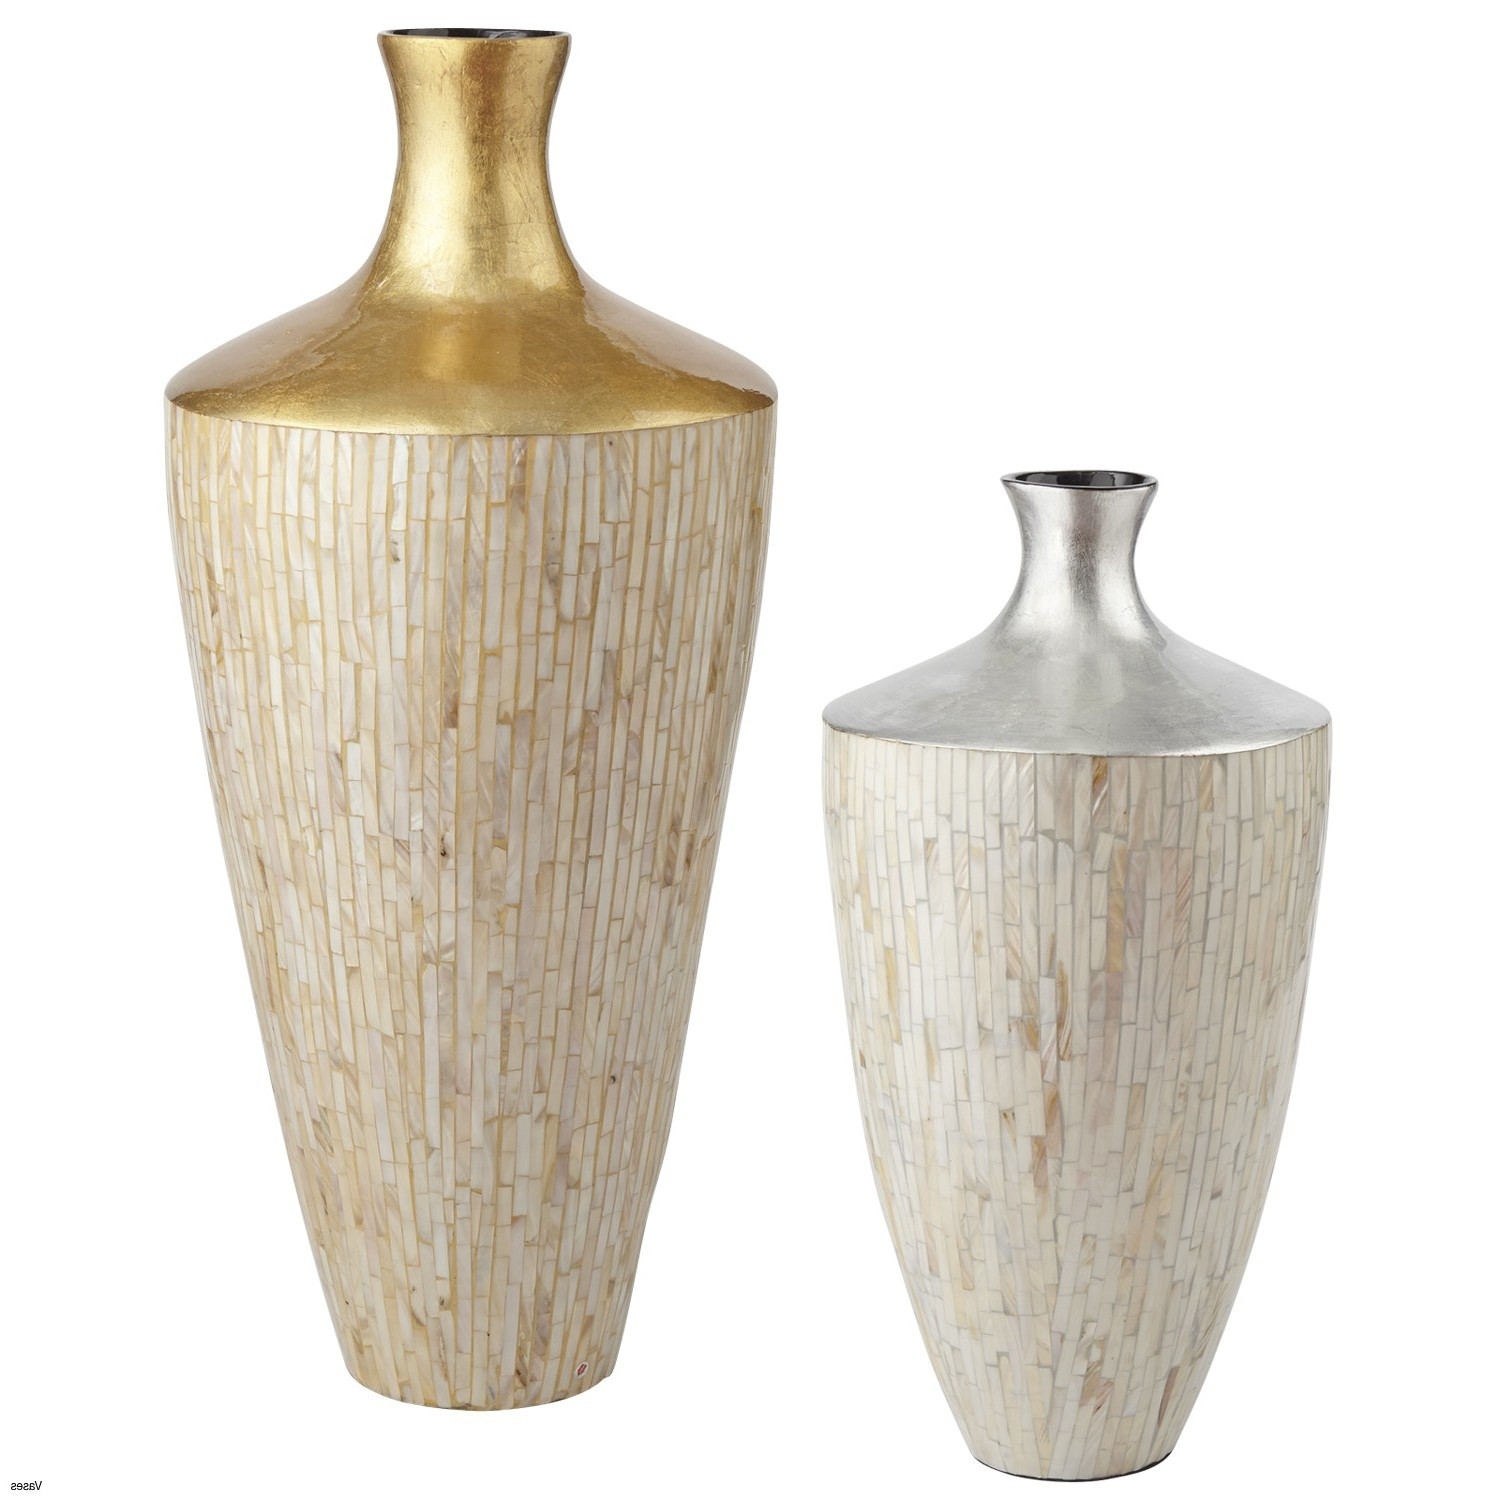 bamboo flower vase of 21 beau decorative vases anciendemutu org pertaining to decorating ideas contemporary for living room decoration with bamboo sticks decor along dark brown seagrass flower